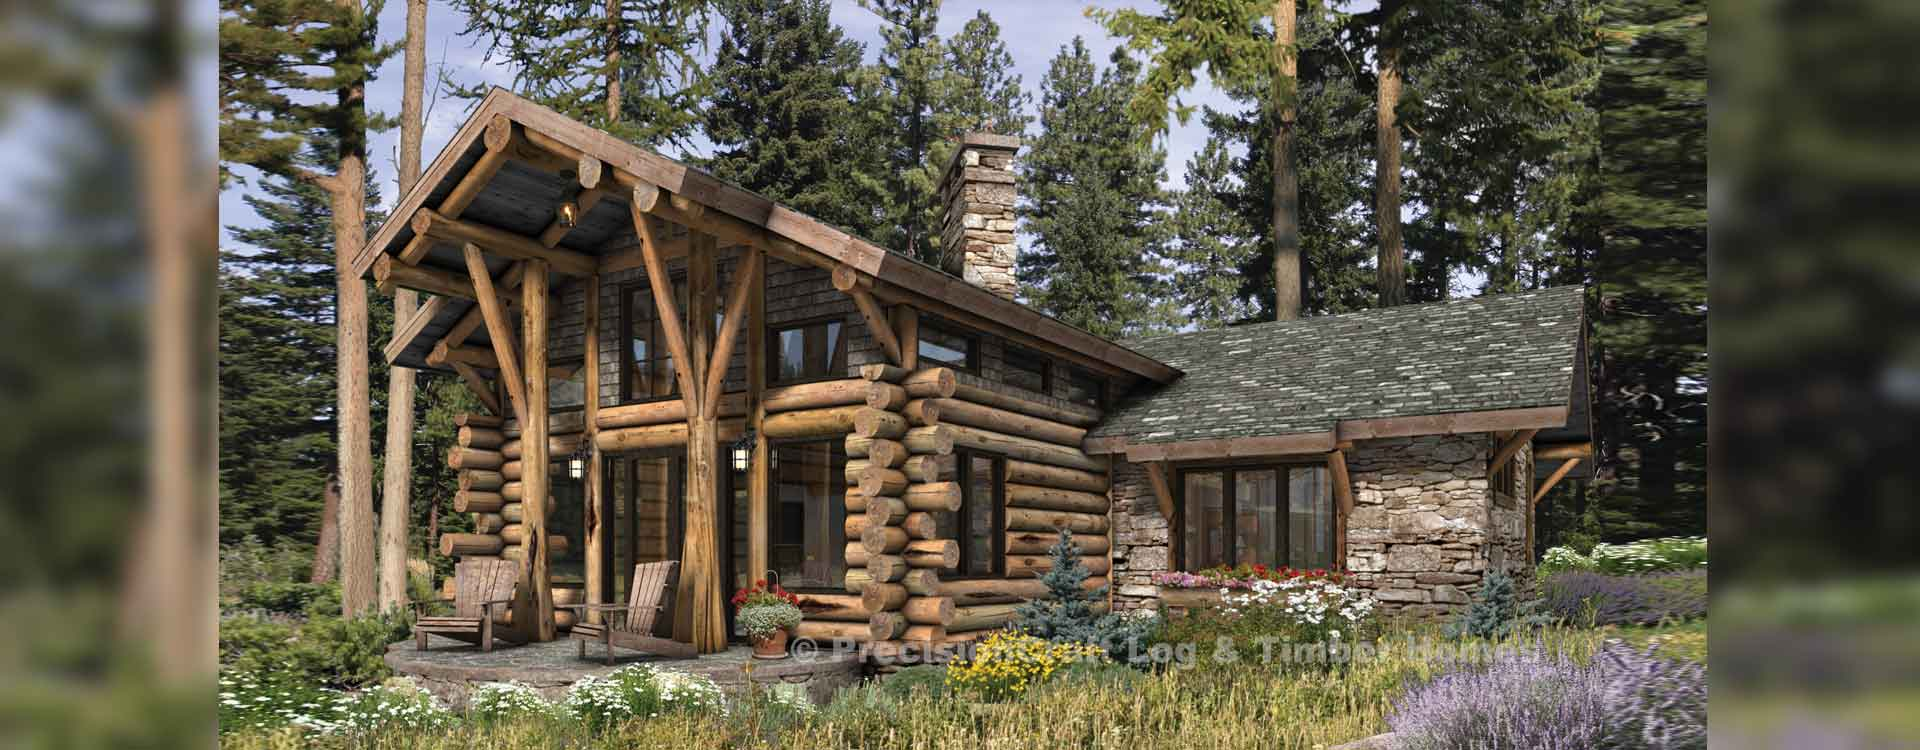 Telluride log home Rendering